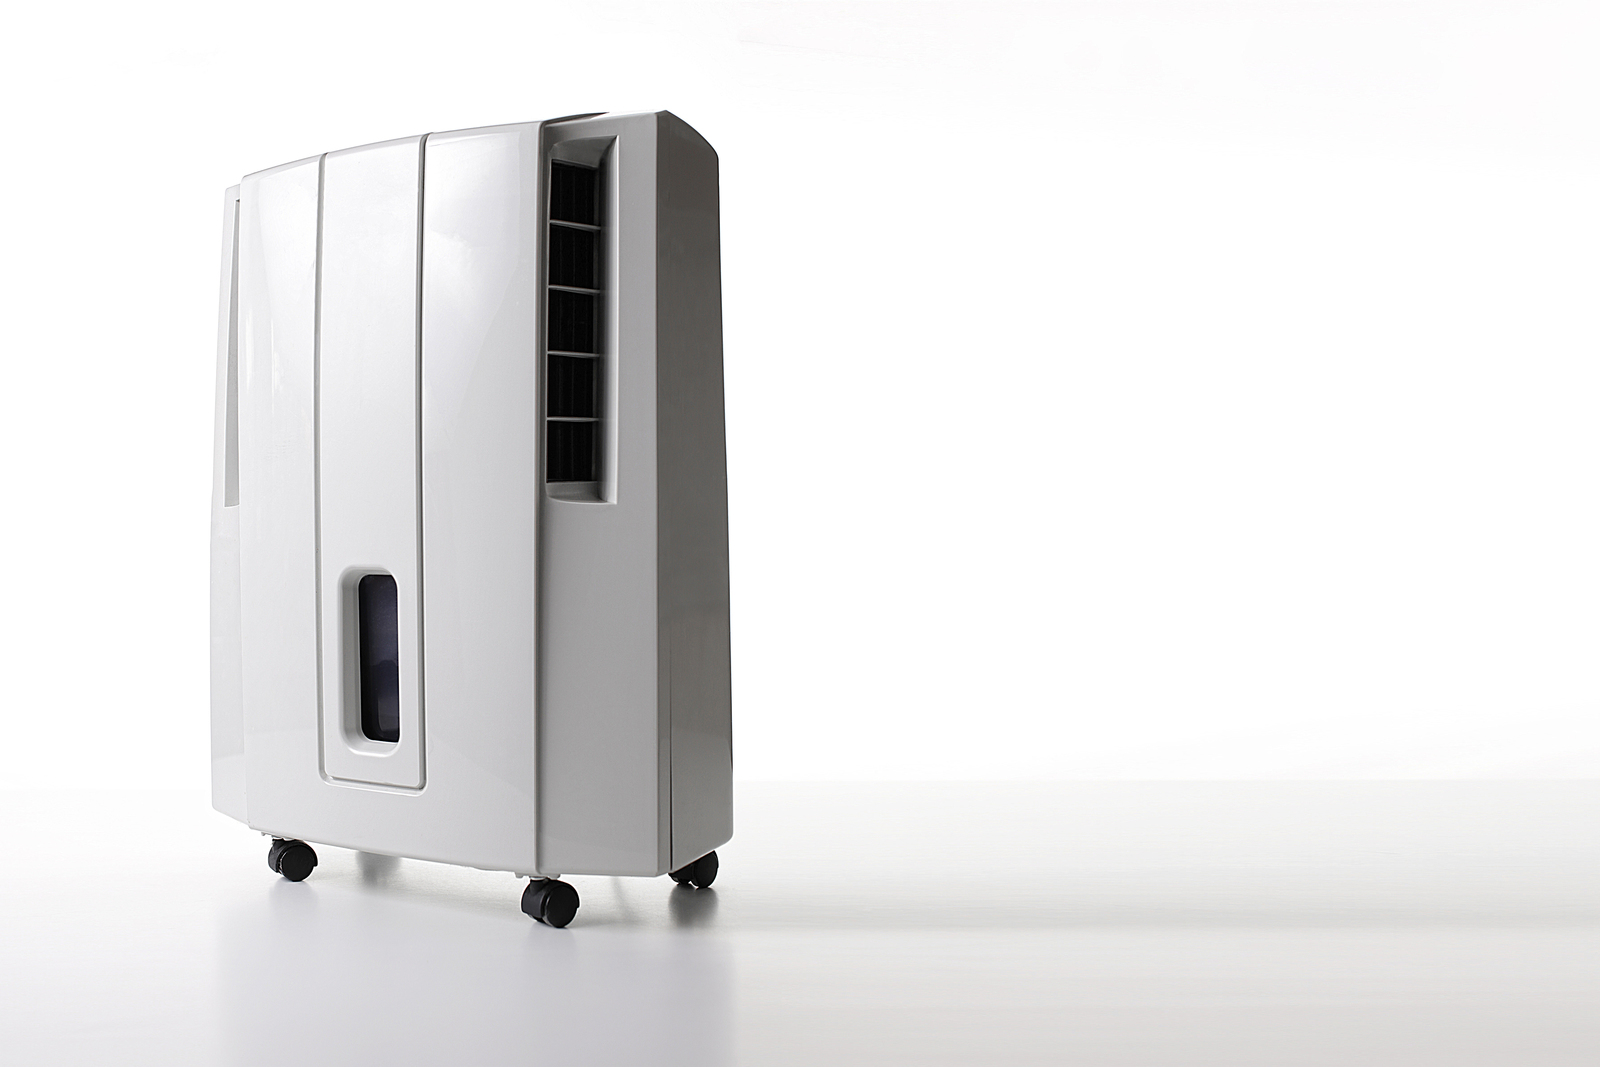 Consider These Things Prior to Purchasing a Commercial Dehumidifier